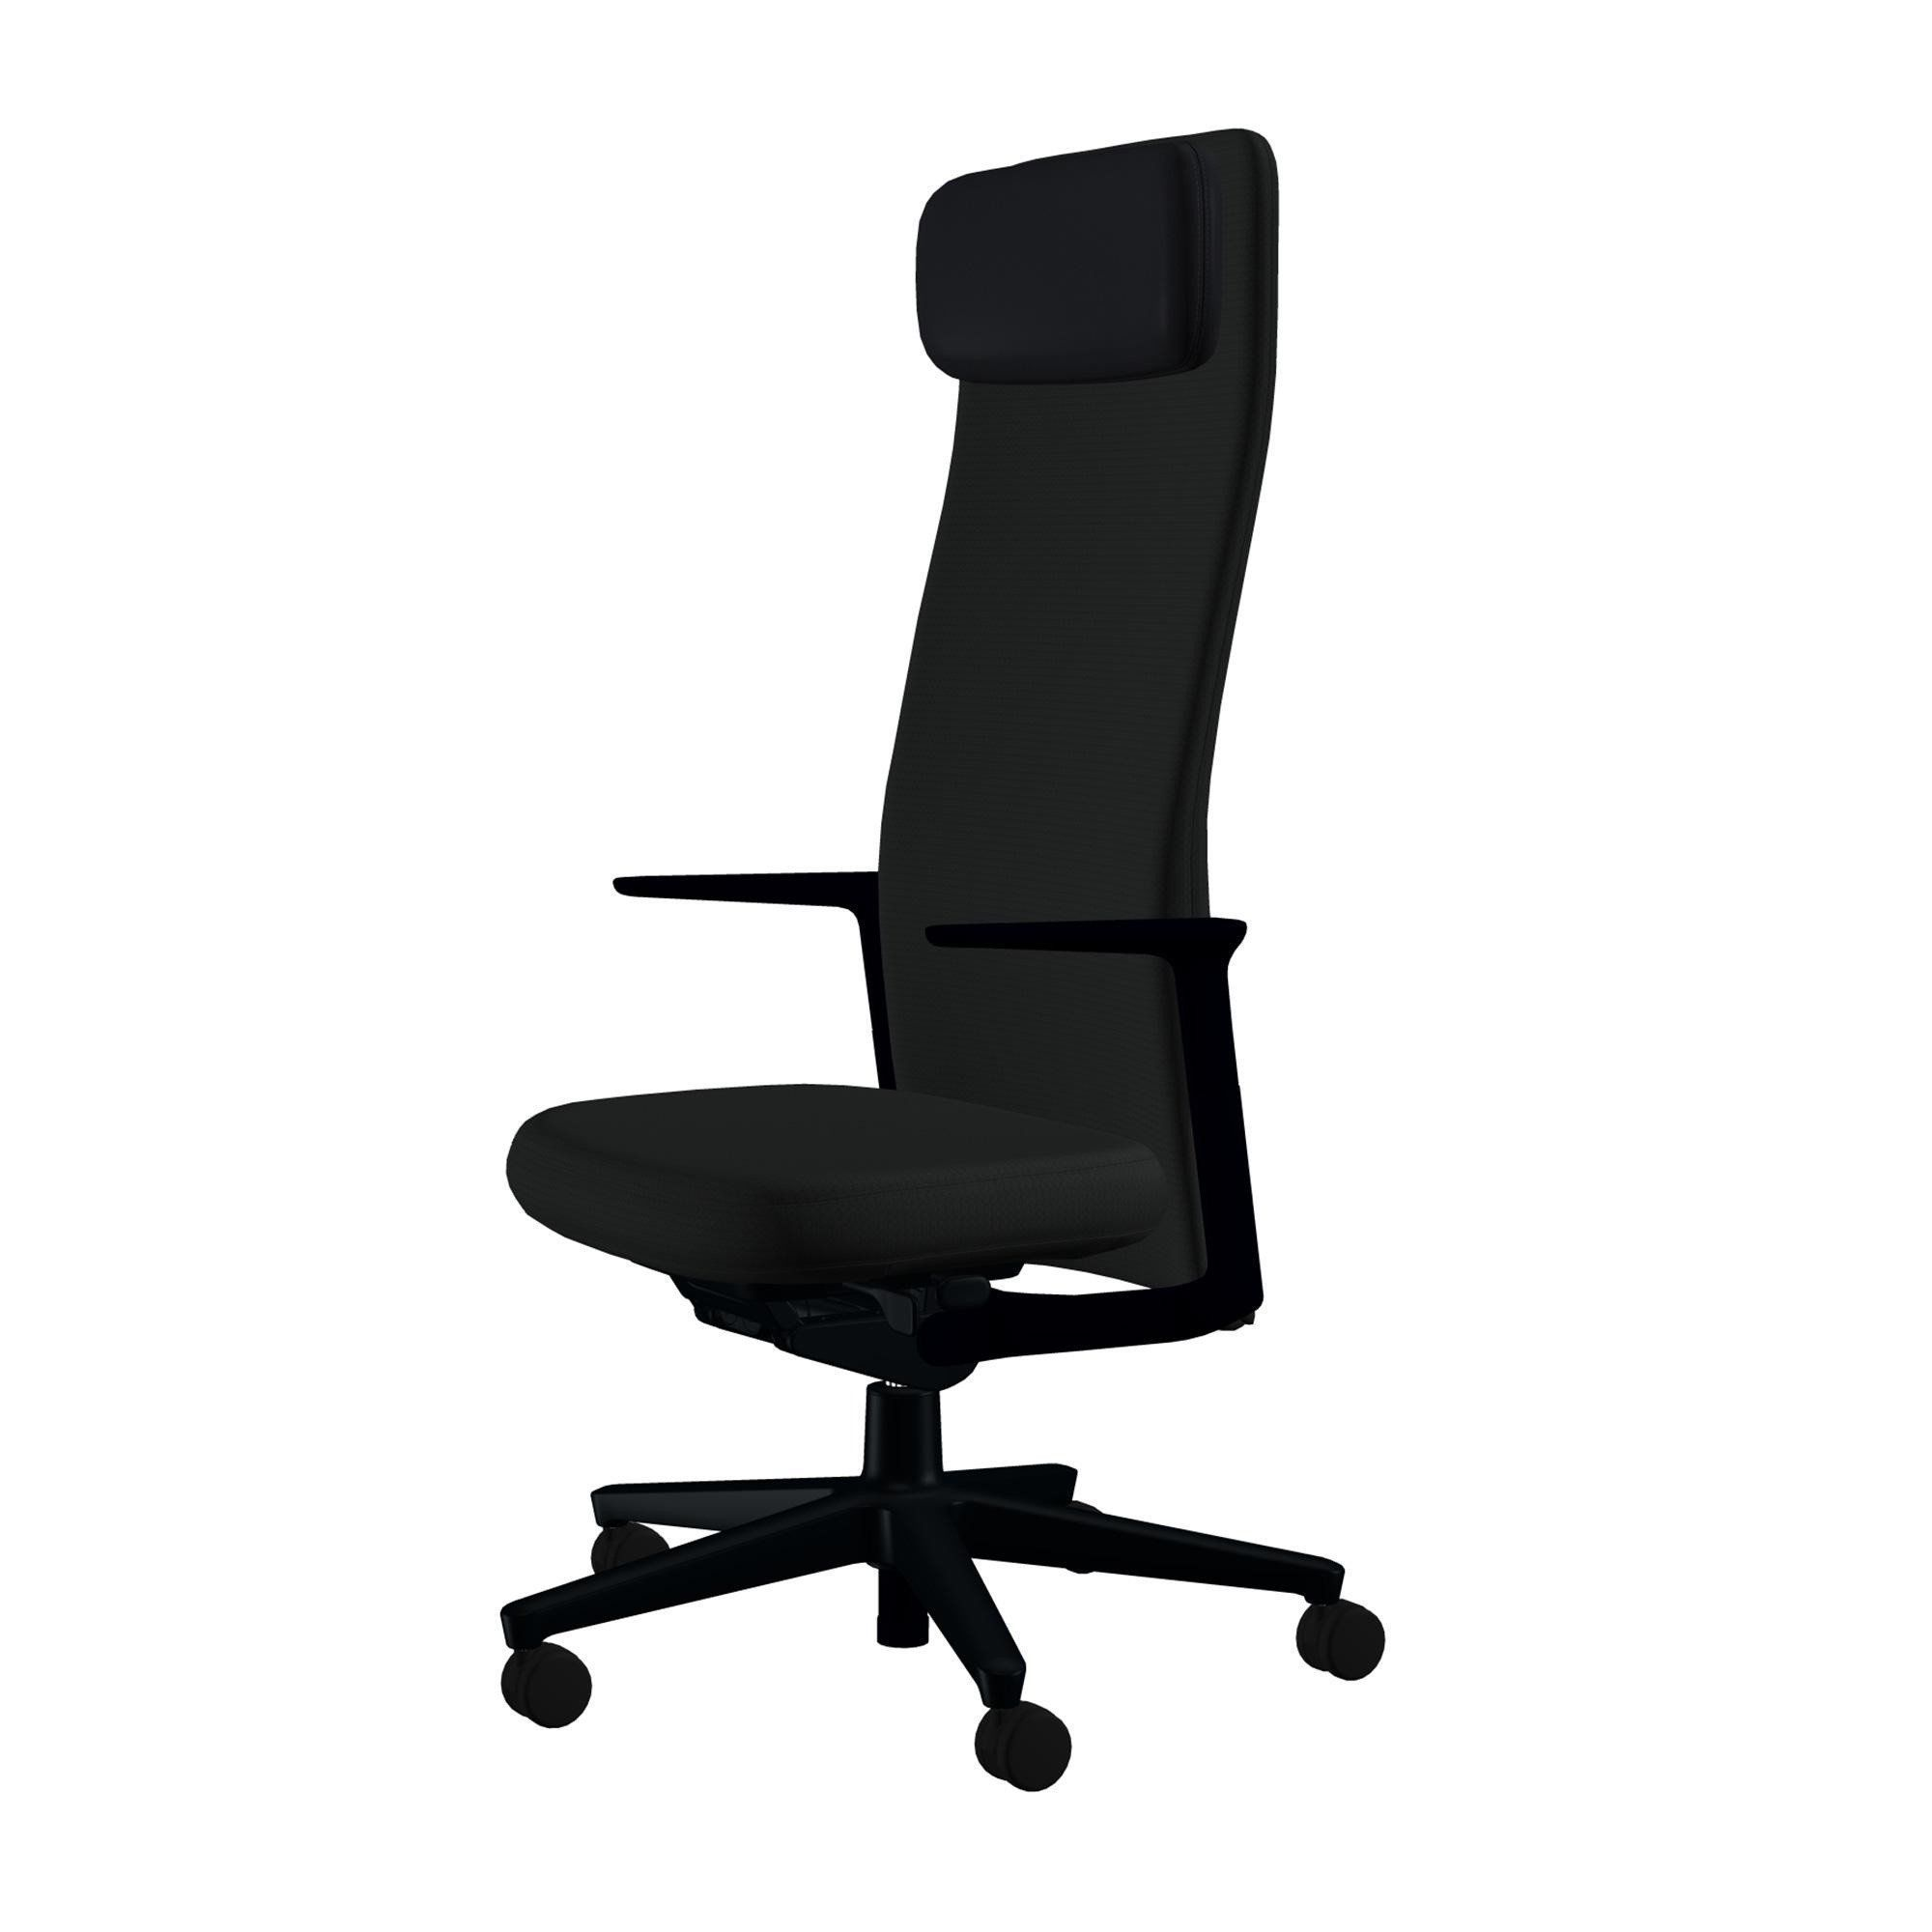 Vitra   Pacific Chair Swivel Chair High Backrest   Black/seat Upholstery  Fabric ...